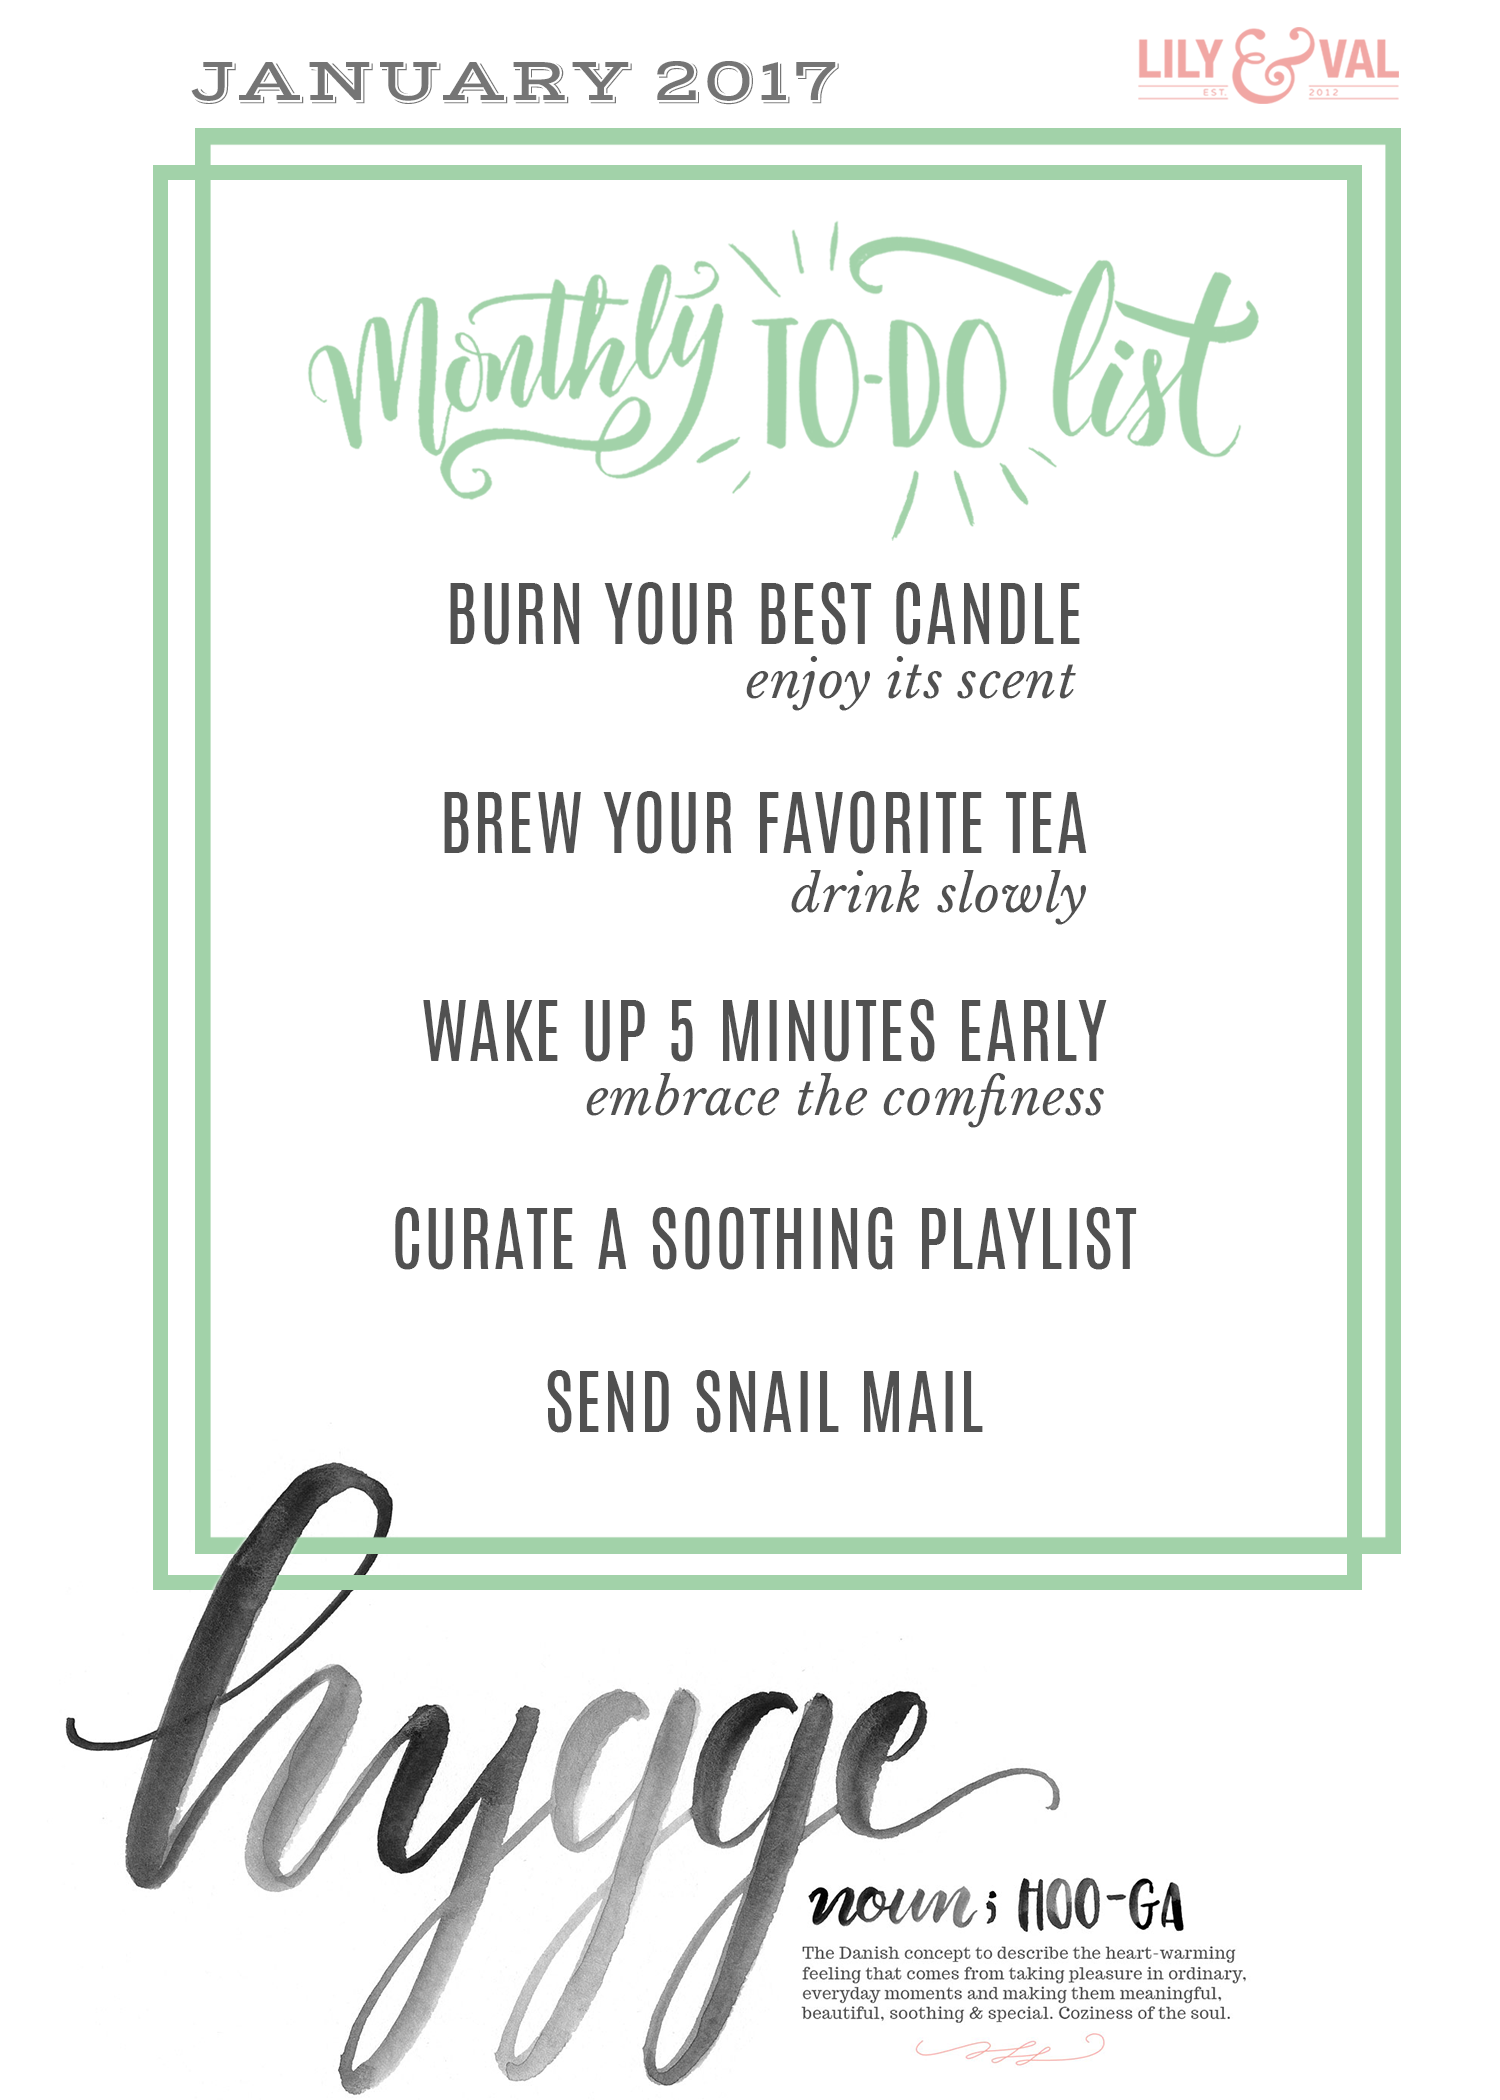 Winter ideas to keep yourself centered - free download for hygge living